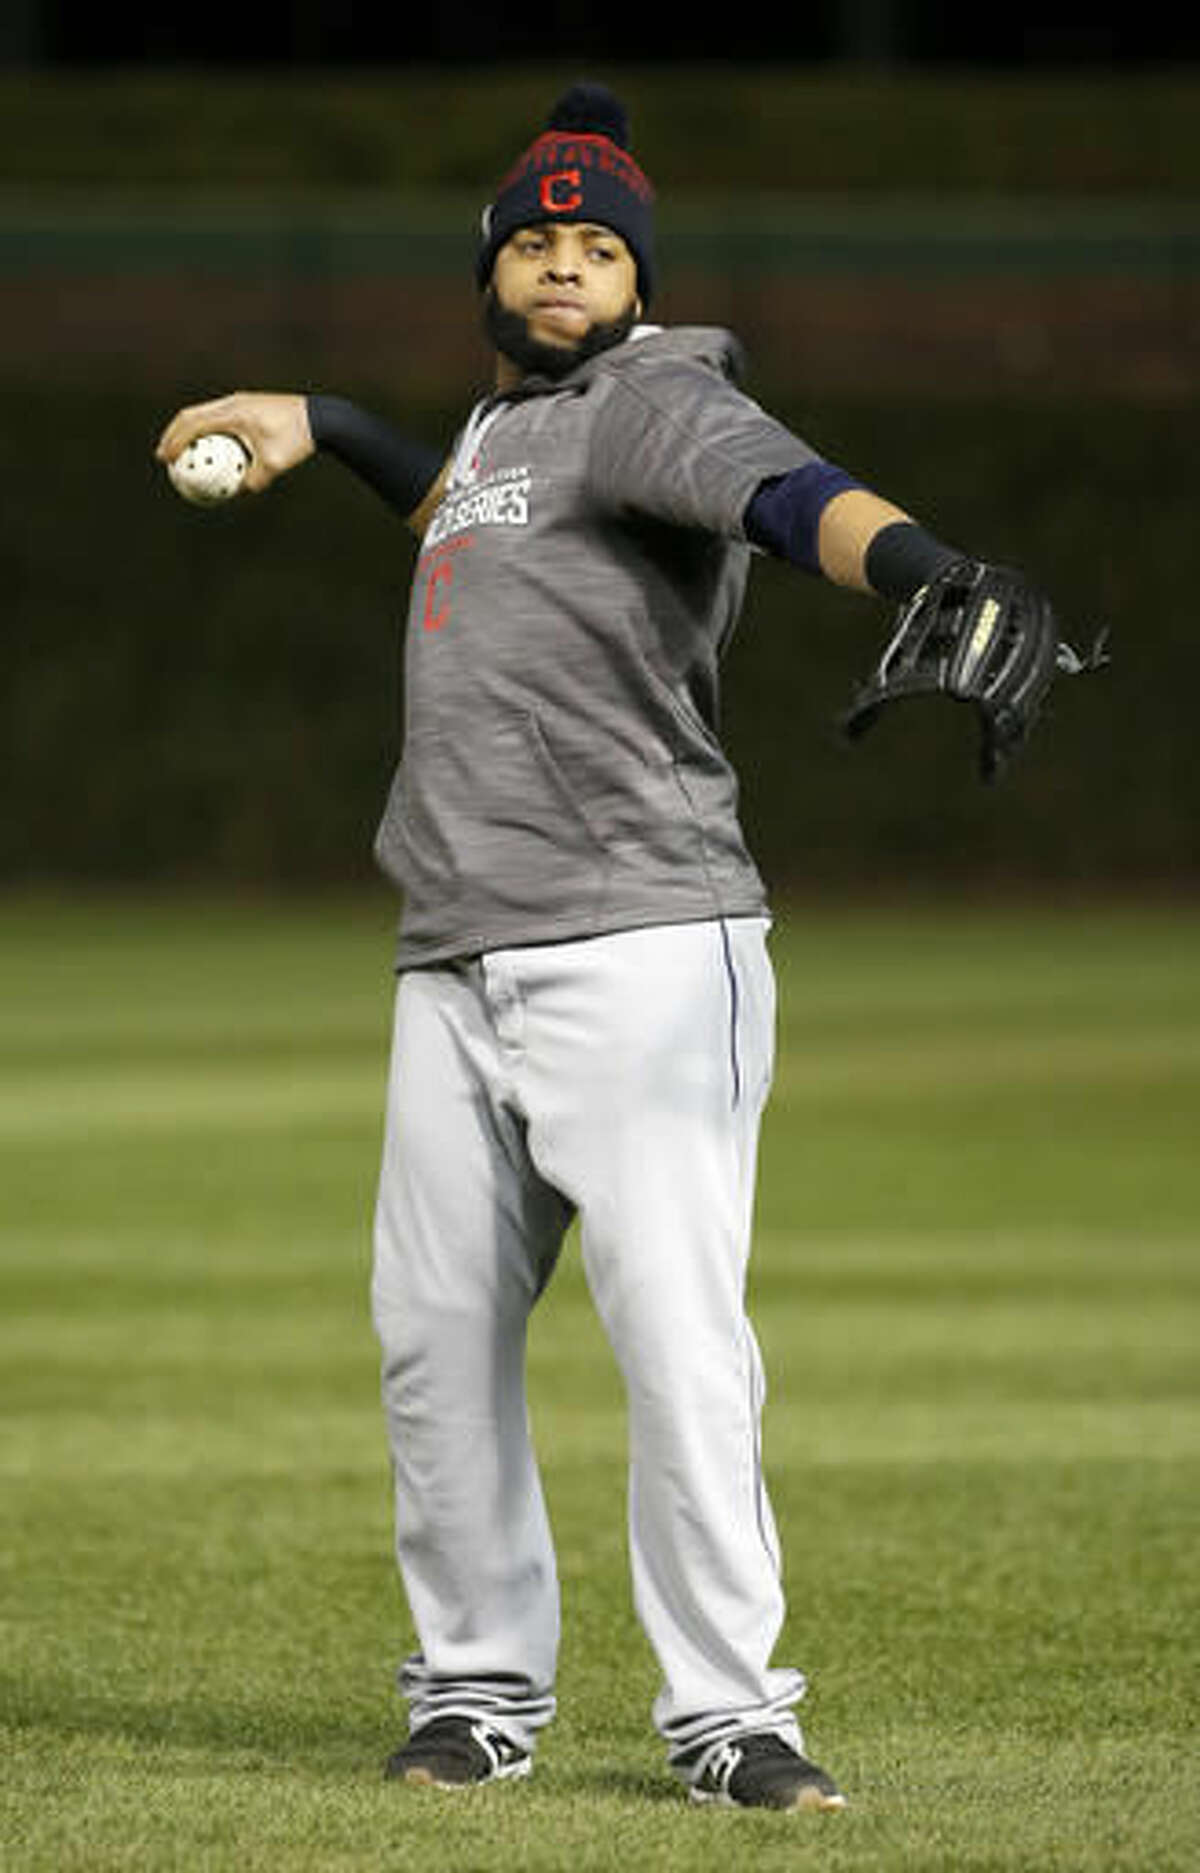 Cleveland Indians' Carlos Santana works out during batting practice for Friday's Game 3 of the Major League Baseball World Series against the Chicago Cubs, Thursday, Oct. 27, 2016, in Chicago. (AP Photo/Nam Y. Huh)